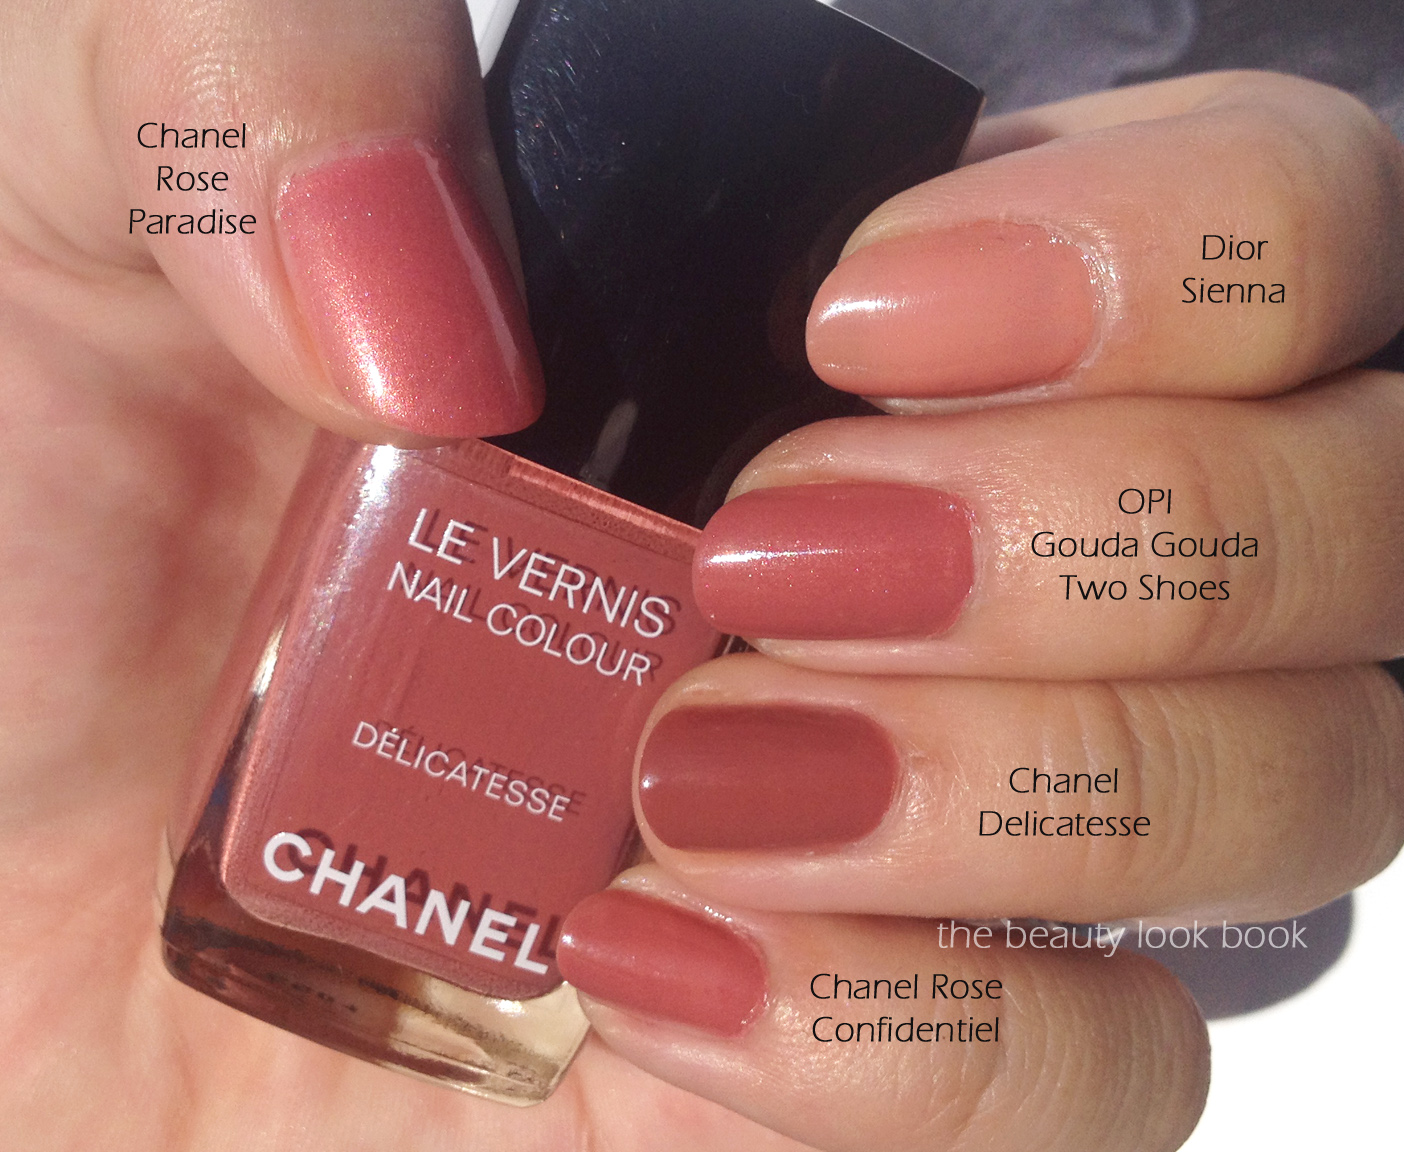 Chanel D 233 Licatesse Le Vernis The Beauty Look Book